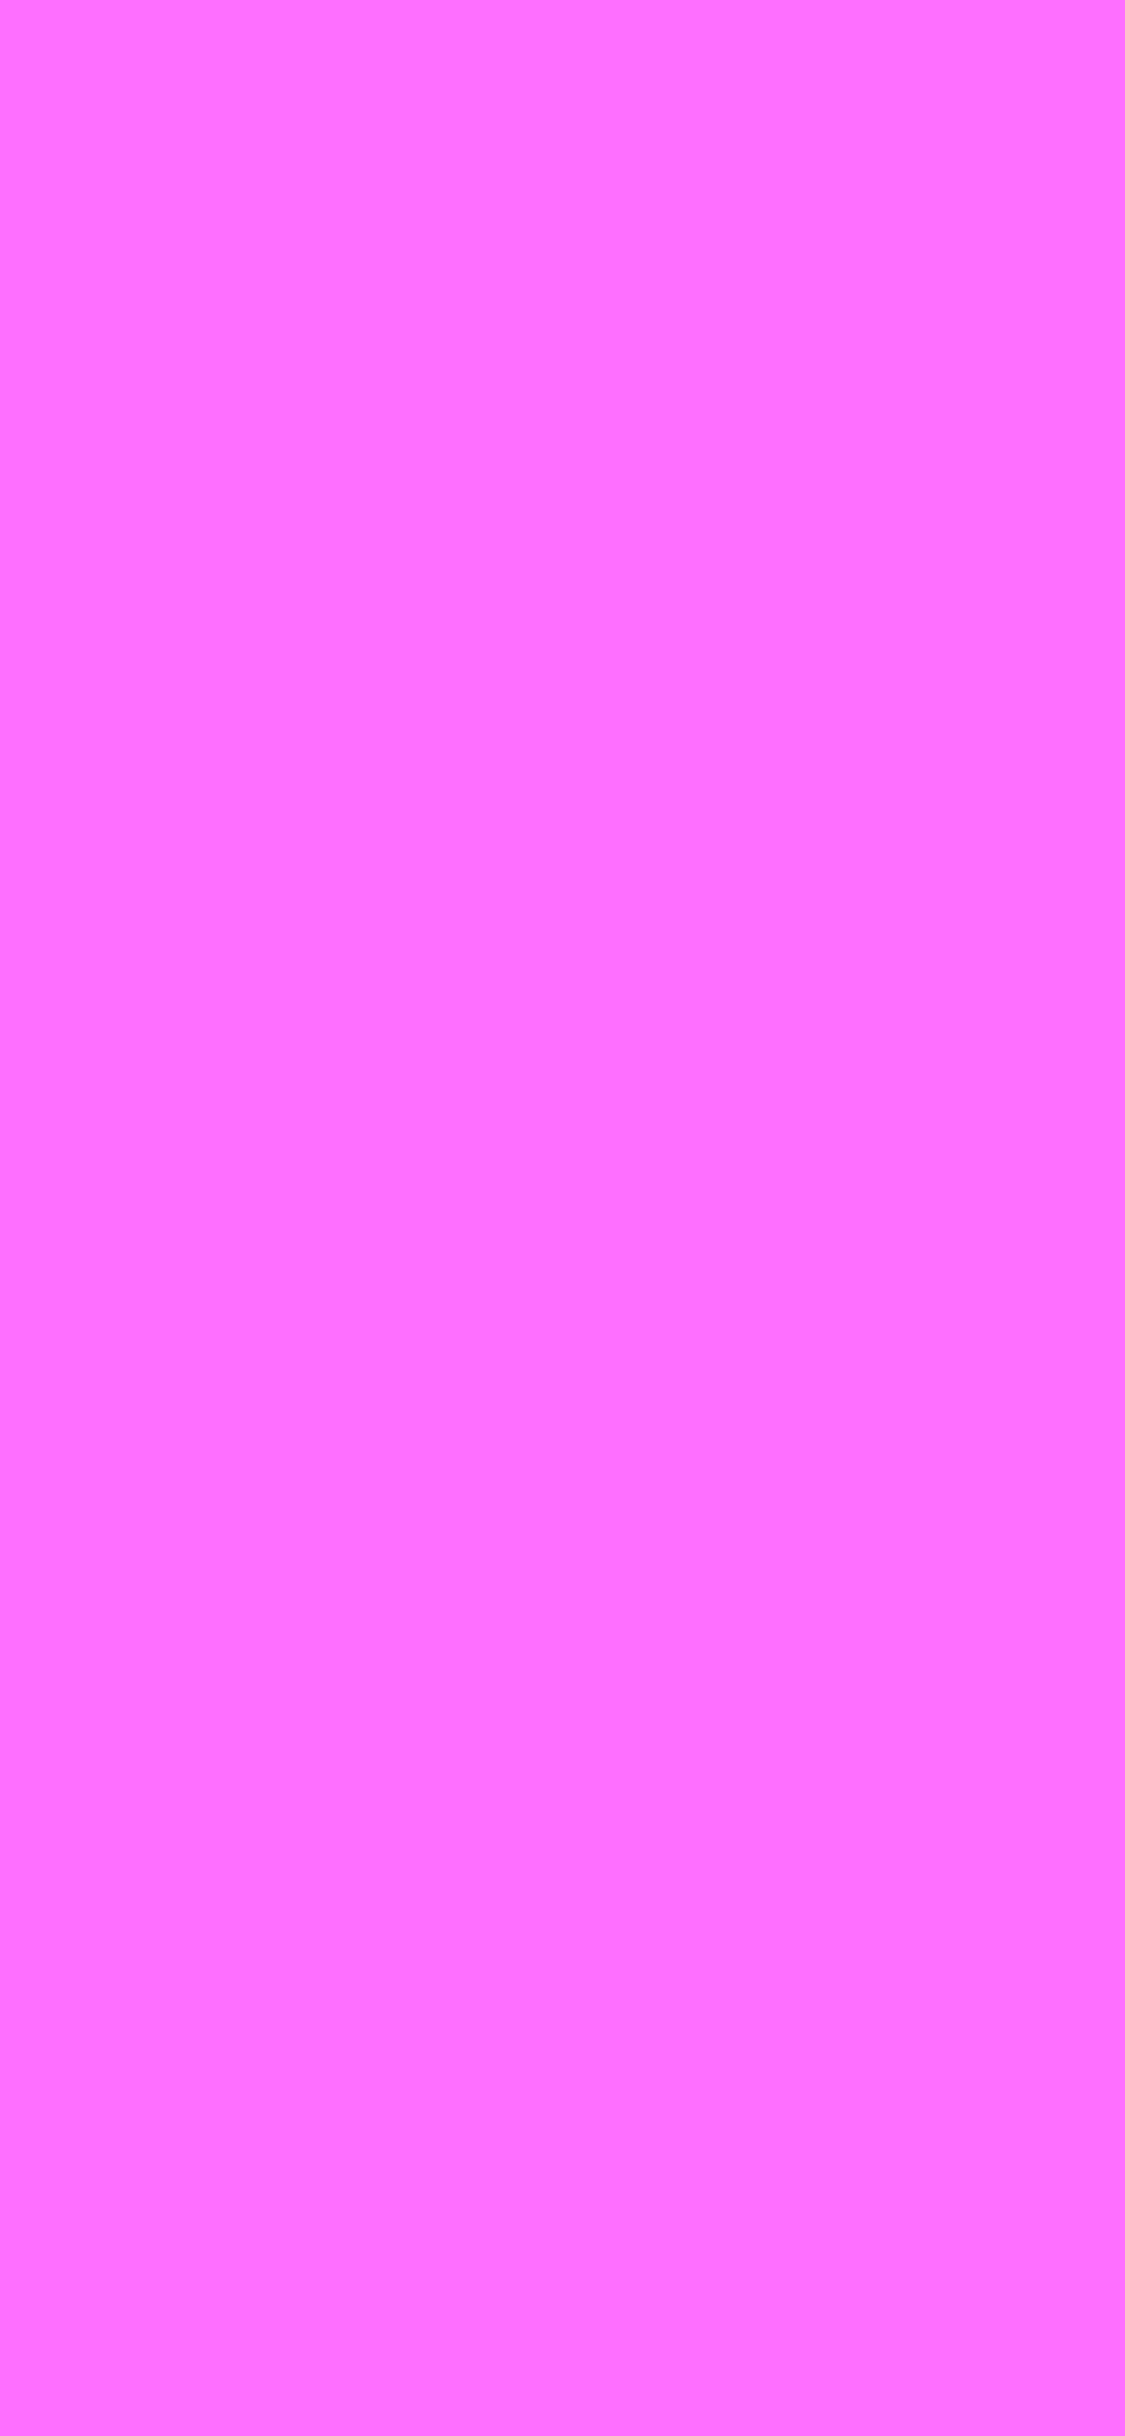 1125x2436 Ultra Pink Solid Color Background